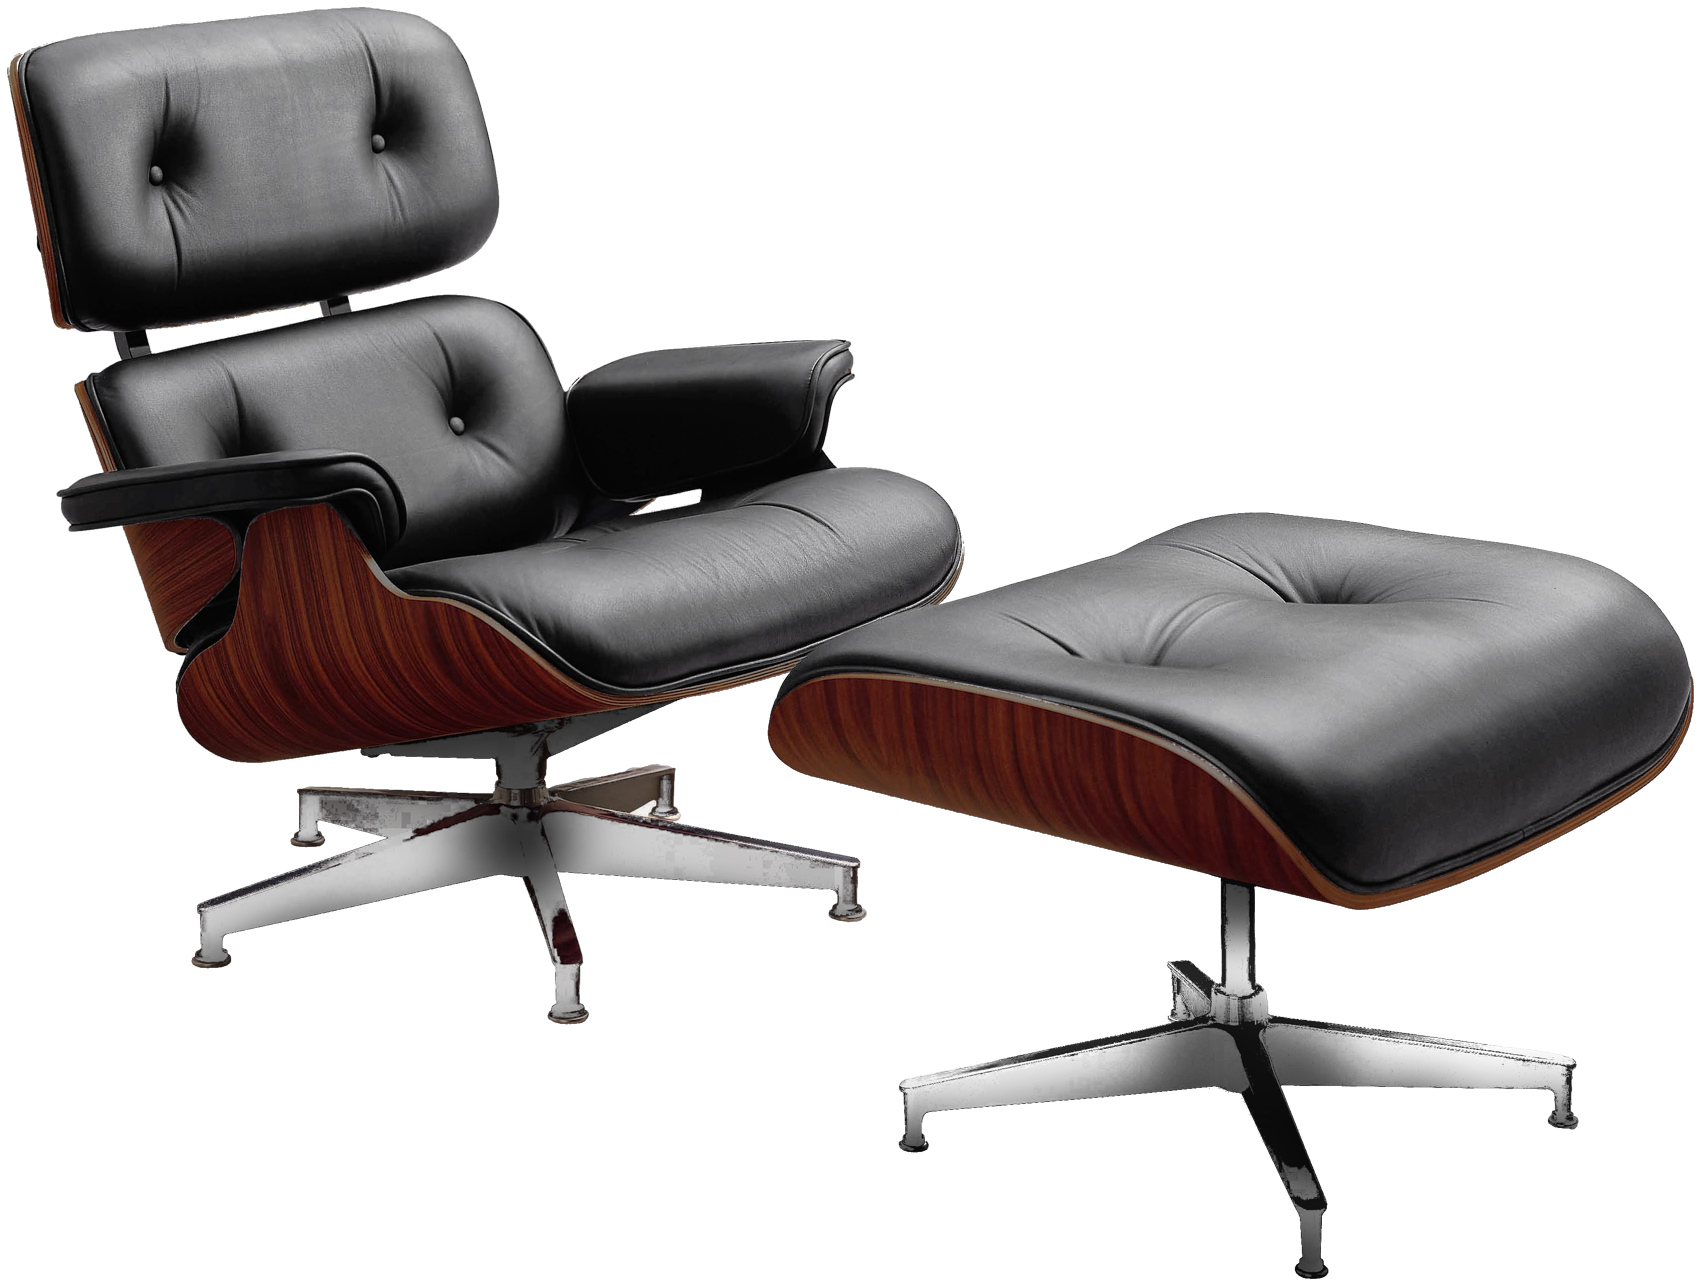 Eames lounge chair 2017 2018 best cars reviews for Stylish lounge furniture